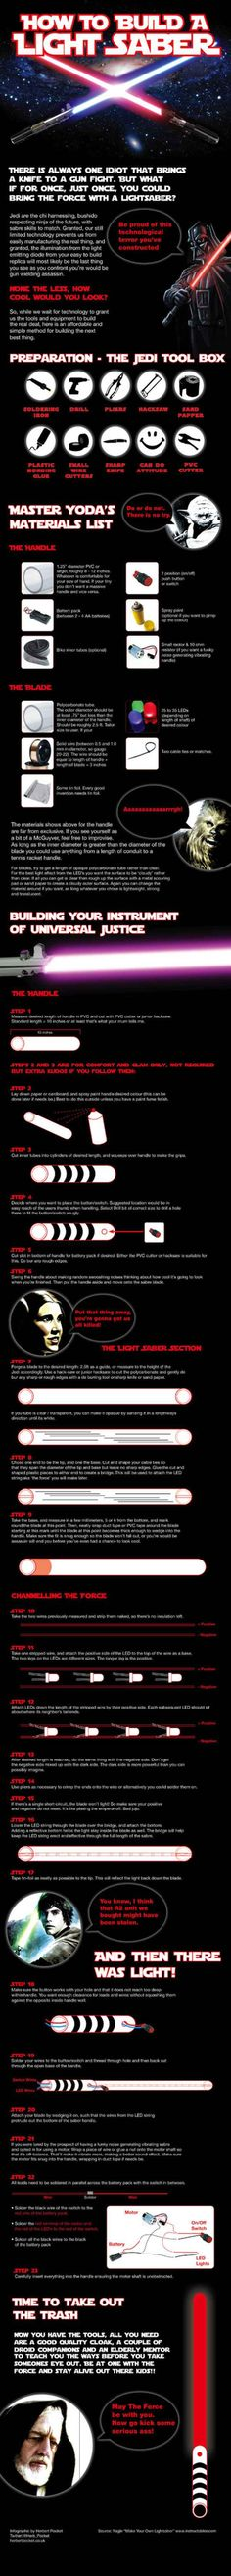 How To Build An LED Lightsaber [Infographic]   Popular Science